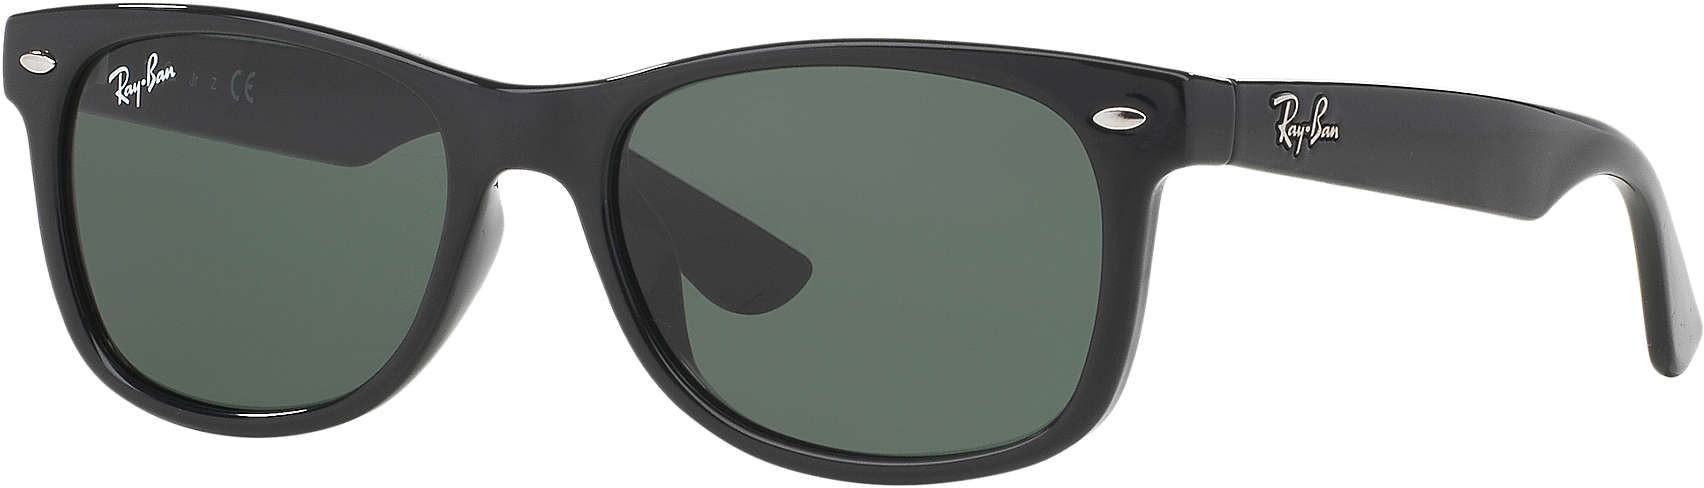 60259b852d34 Ray-Ban Junior RJ9052S Sunglasses